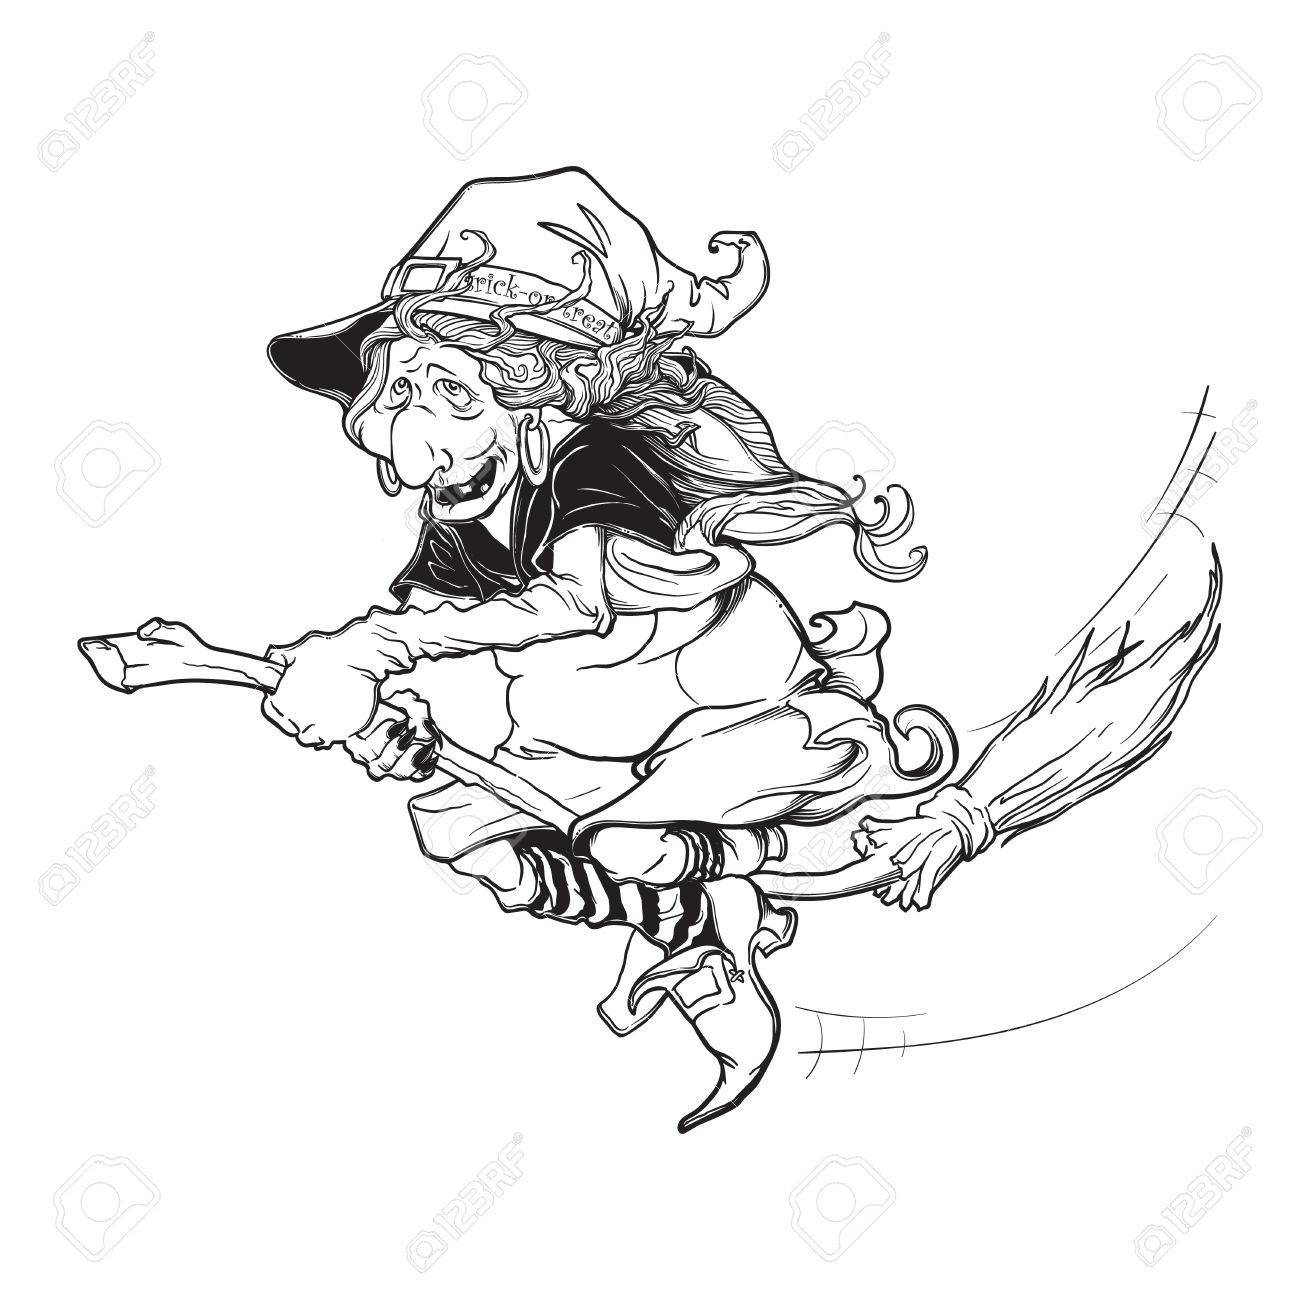 1300x1300 Halloween Witch Riding The Broom. Halloween Character Concept